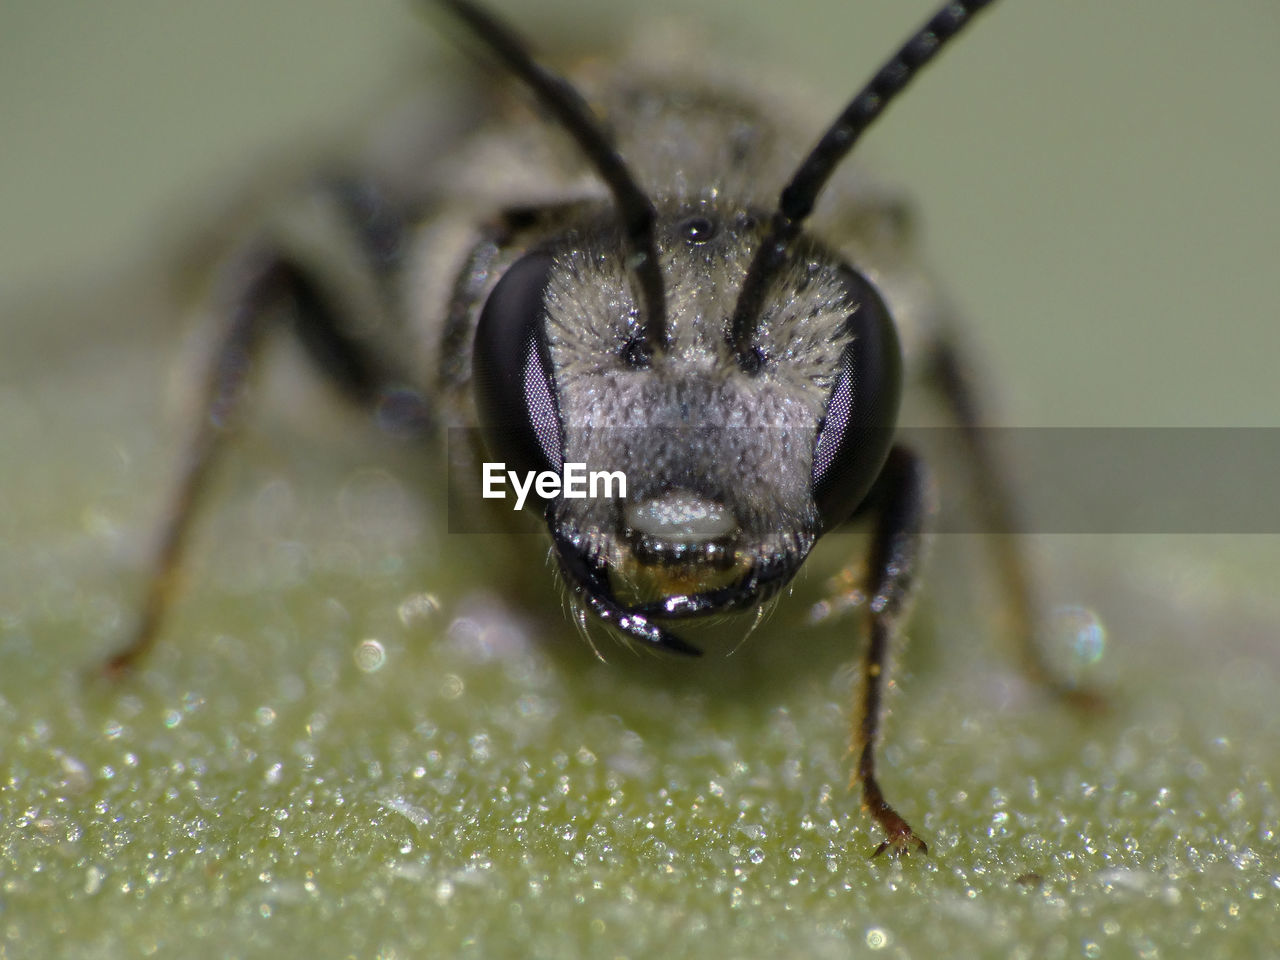 one animal, animal themes, animal, animals in the wild, animal wildlife, insect, close-up, invertebrate, selective focus, animal body part, nature, no people, eye, extreme close-up, macro, day, green color, animal antenna, animal eye, outdoors, animal head